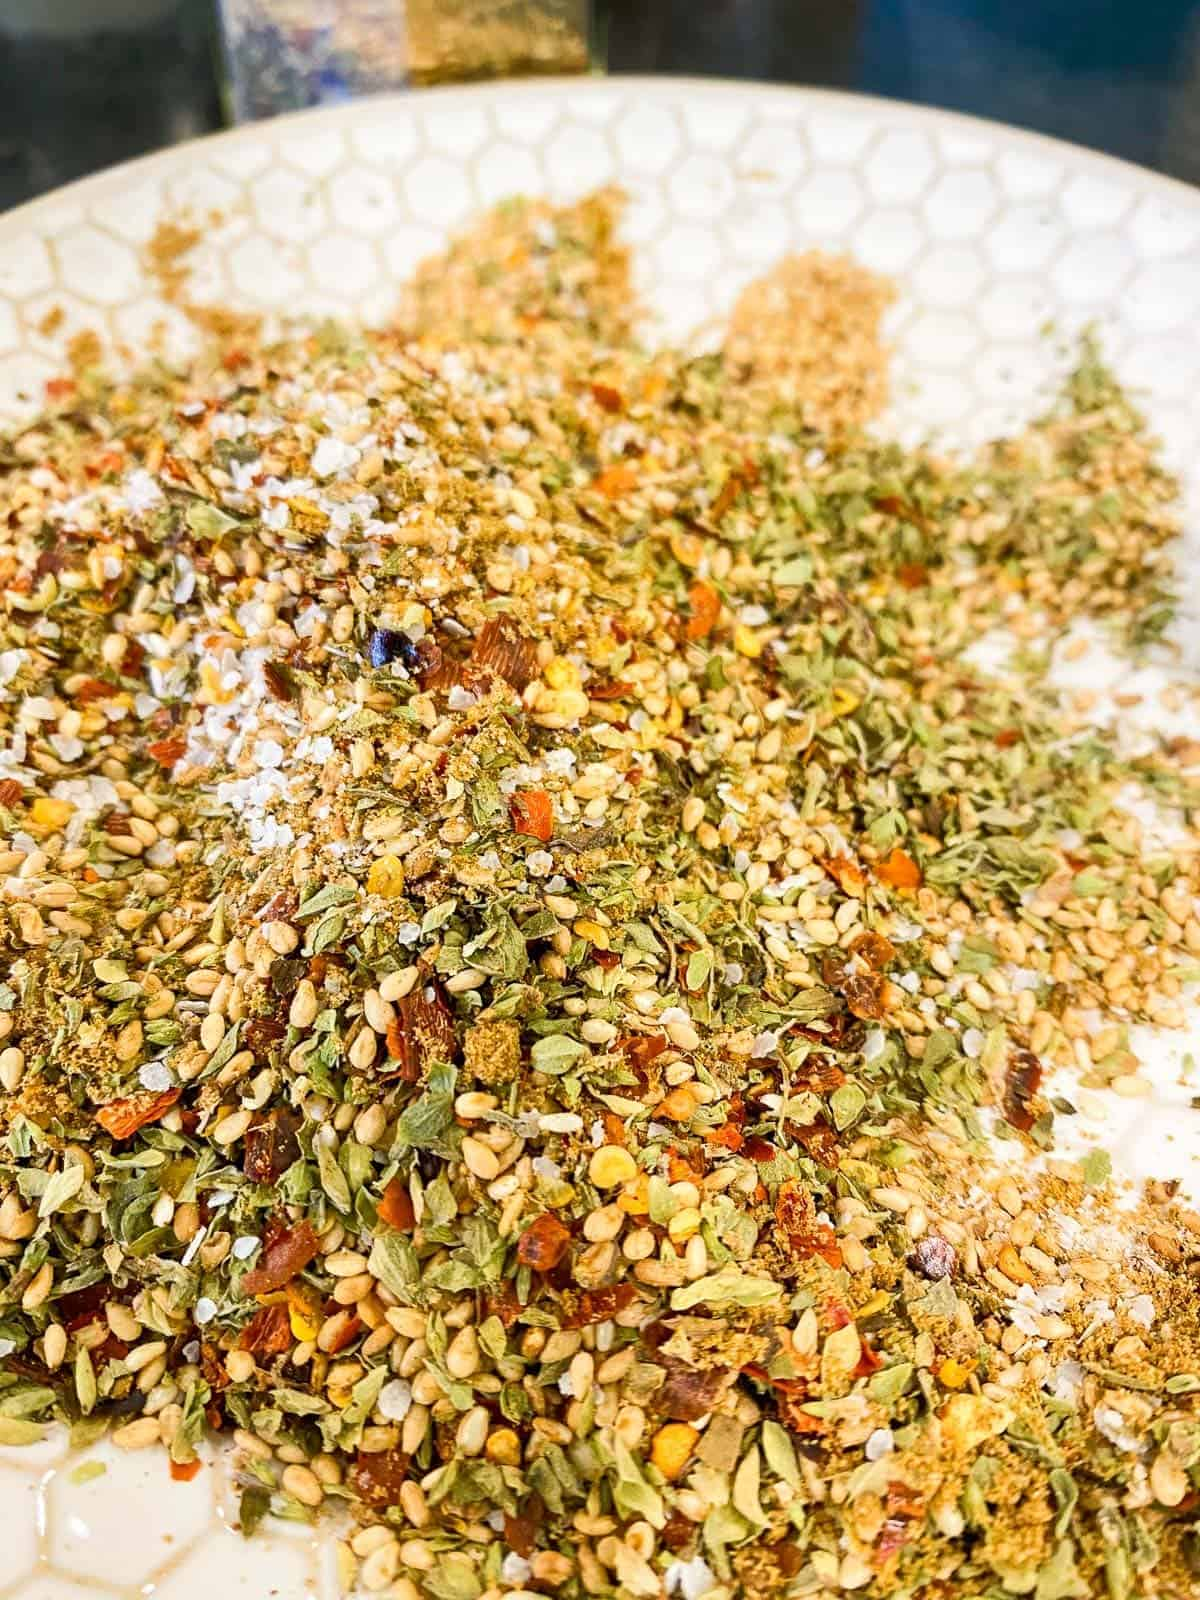 Mediterranean Seasoning on a plate ready to be stored in an airtight container.